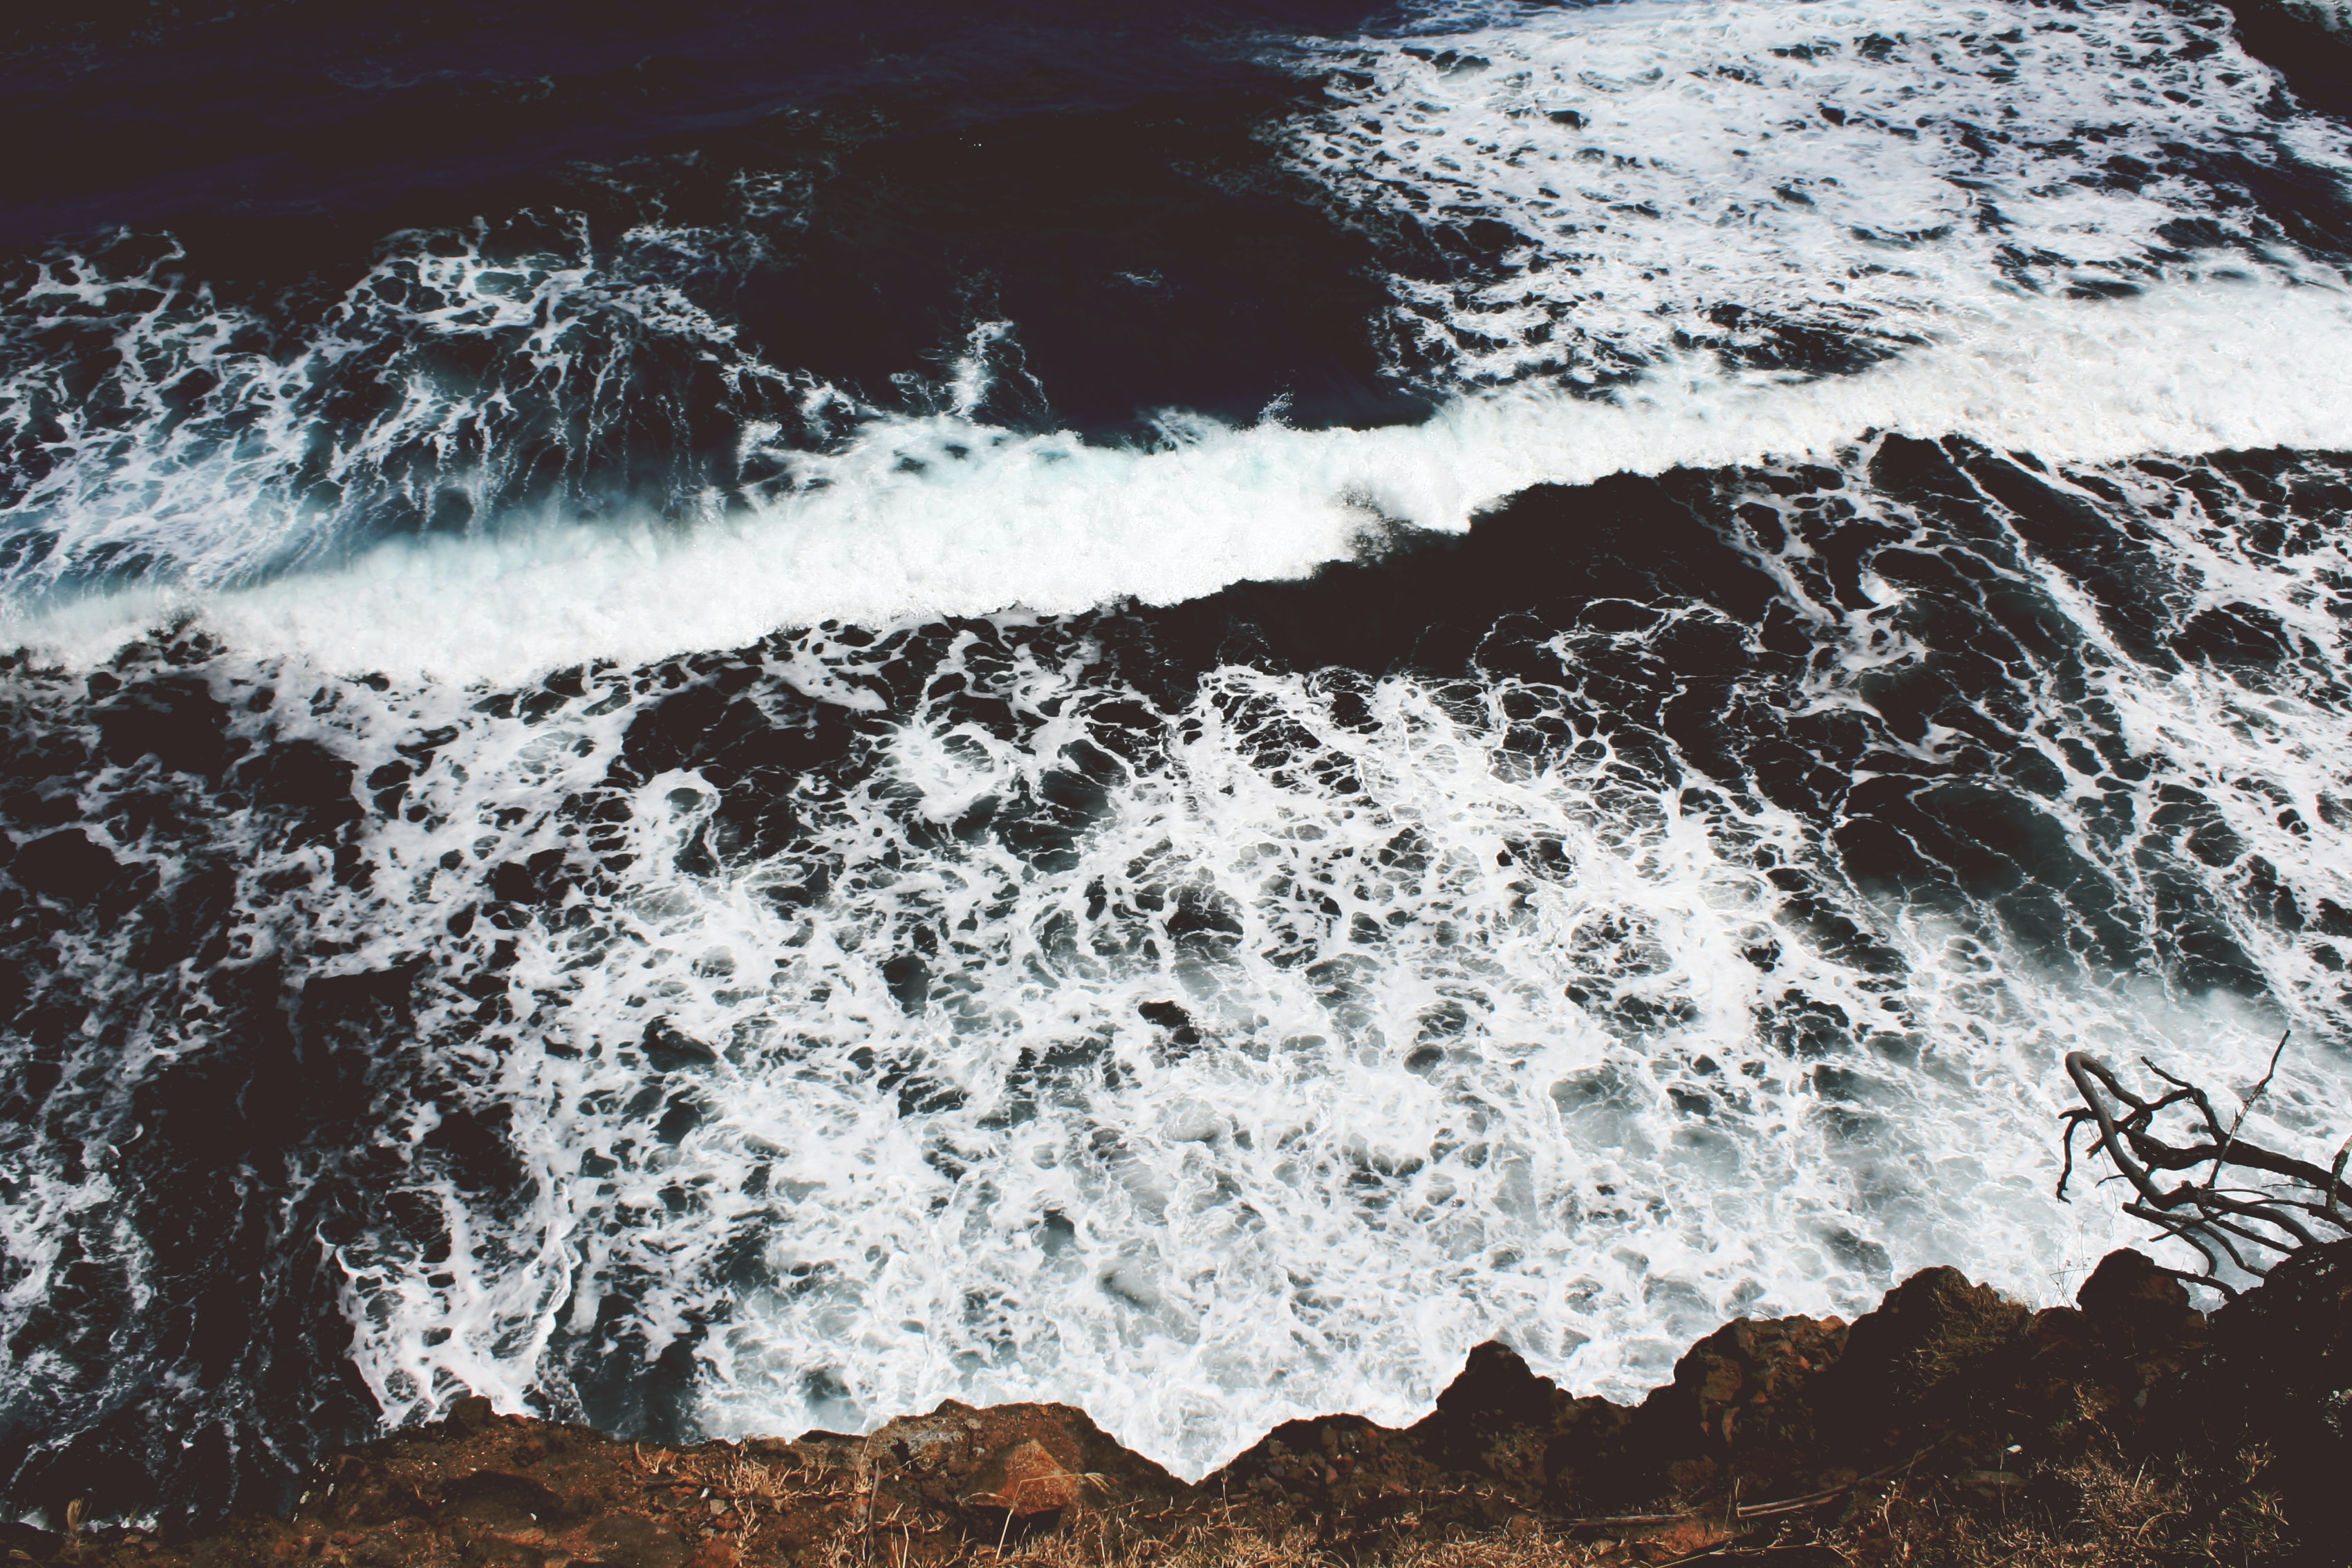 Frothy sea waves crashing against a rocky cliff